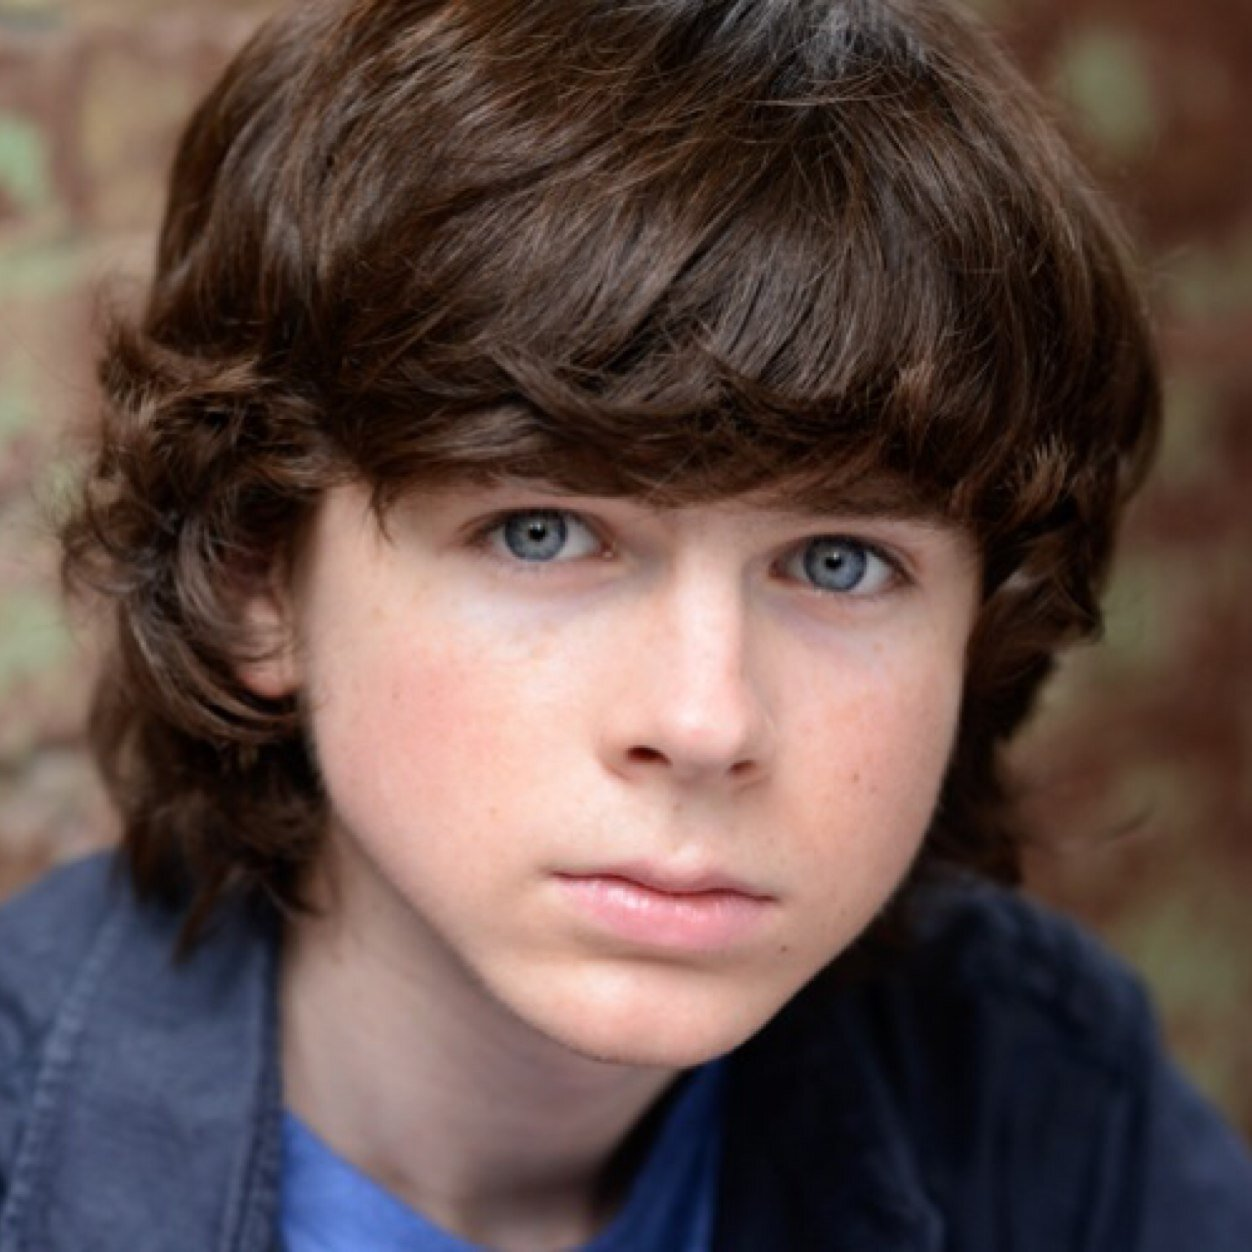 Chandler Riggs earned a  million dollar salary - leaving the net worth at 1 million in 2018